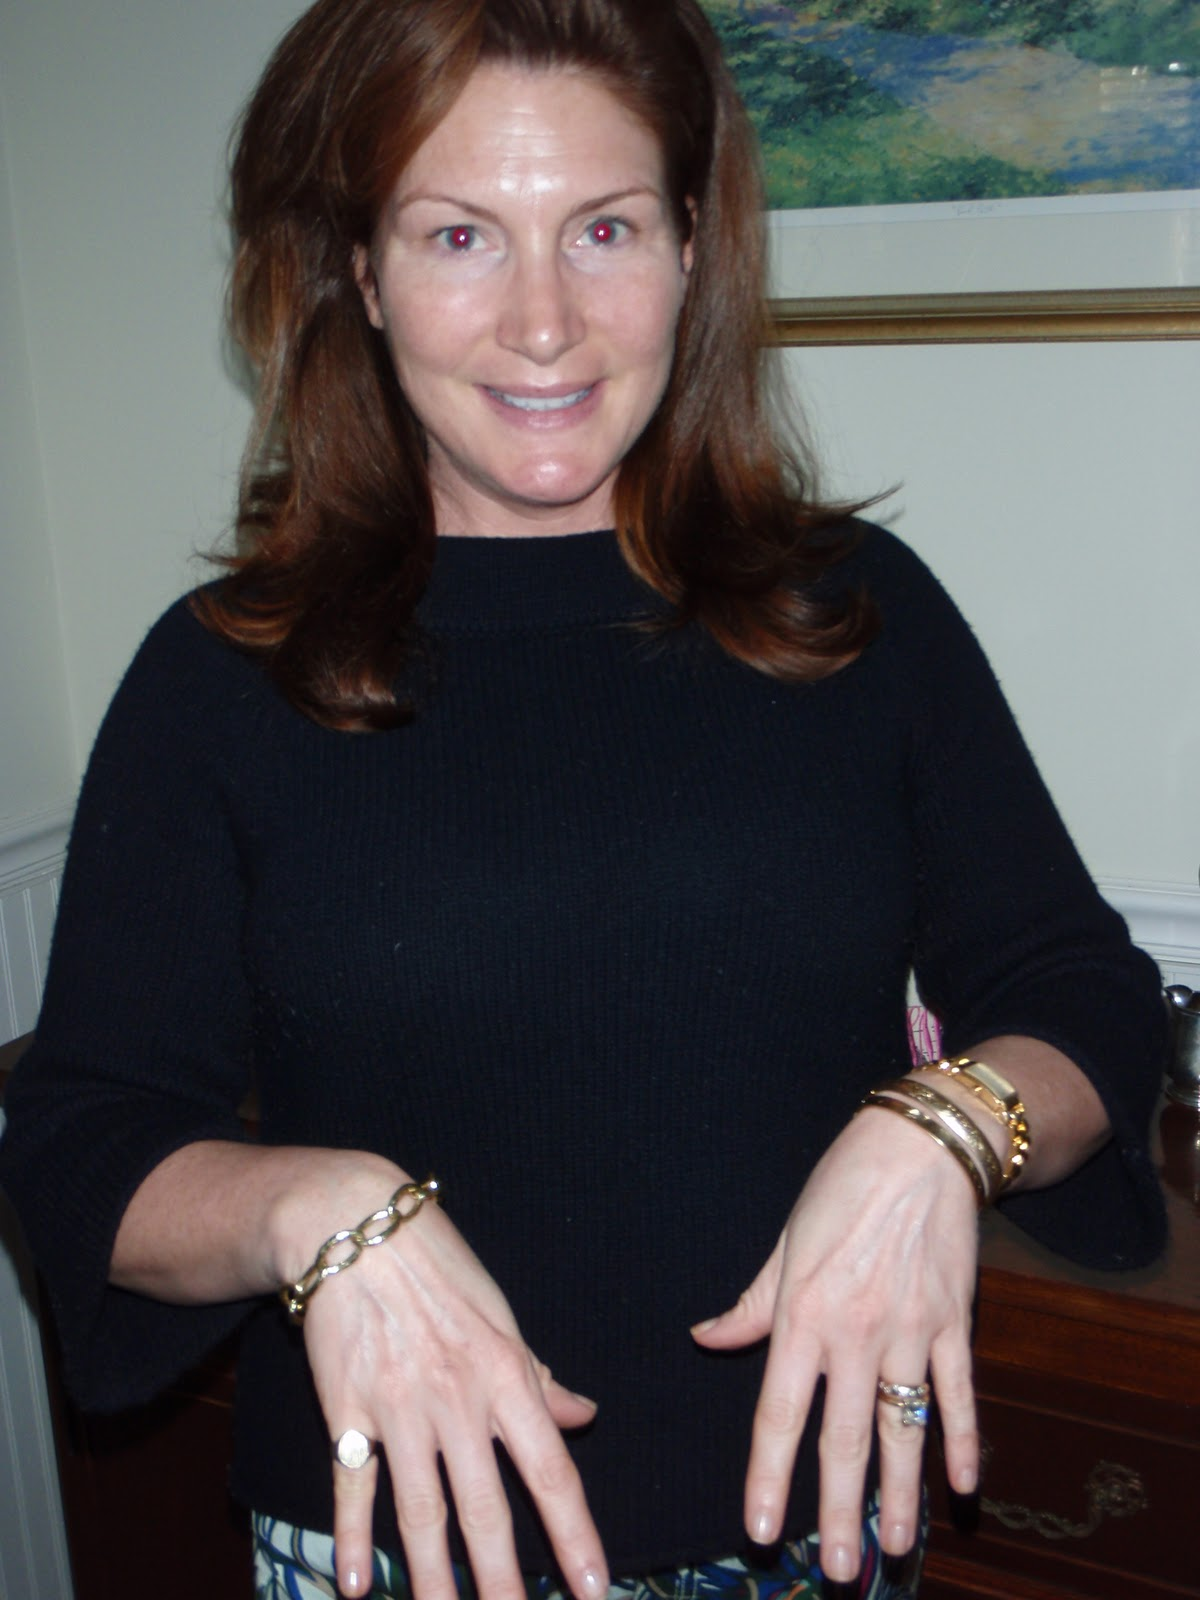 Left Hand: Daimond Ring And Wedding Band Gold Tank Watch And Two Bangles  Right Hand Gold Signet Pinky Ring, Gold Chain Bracelet